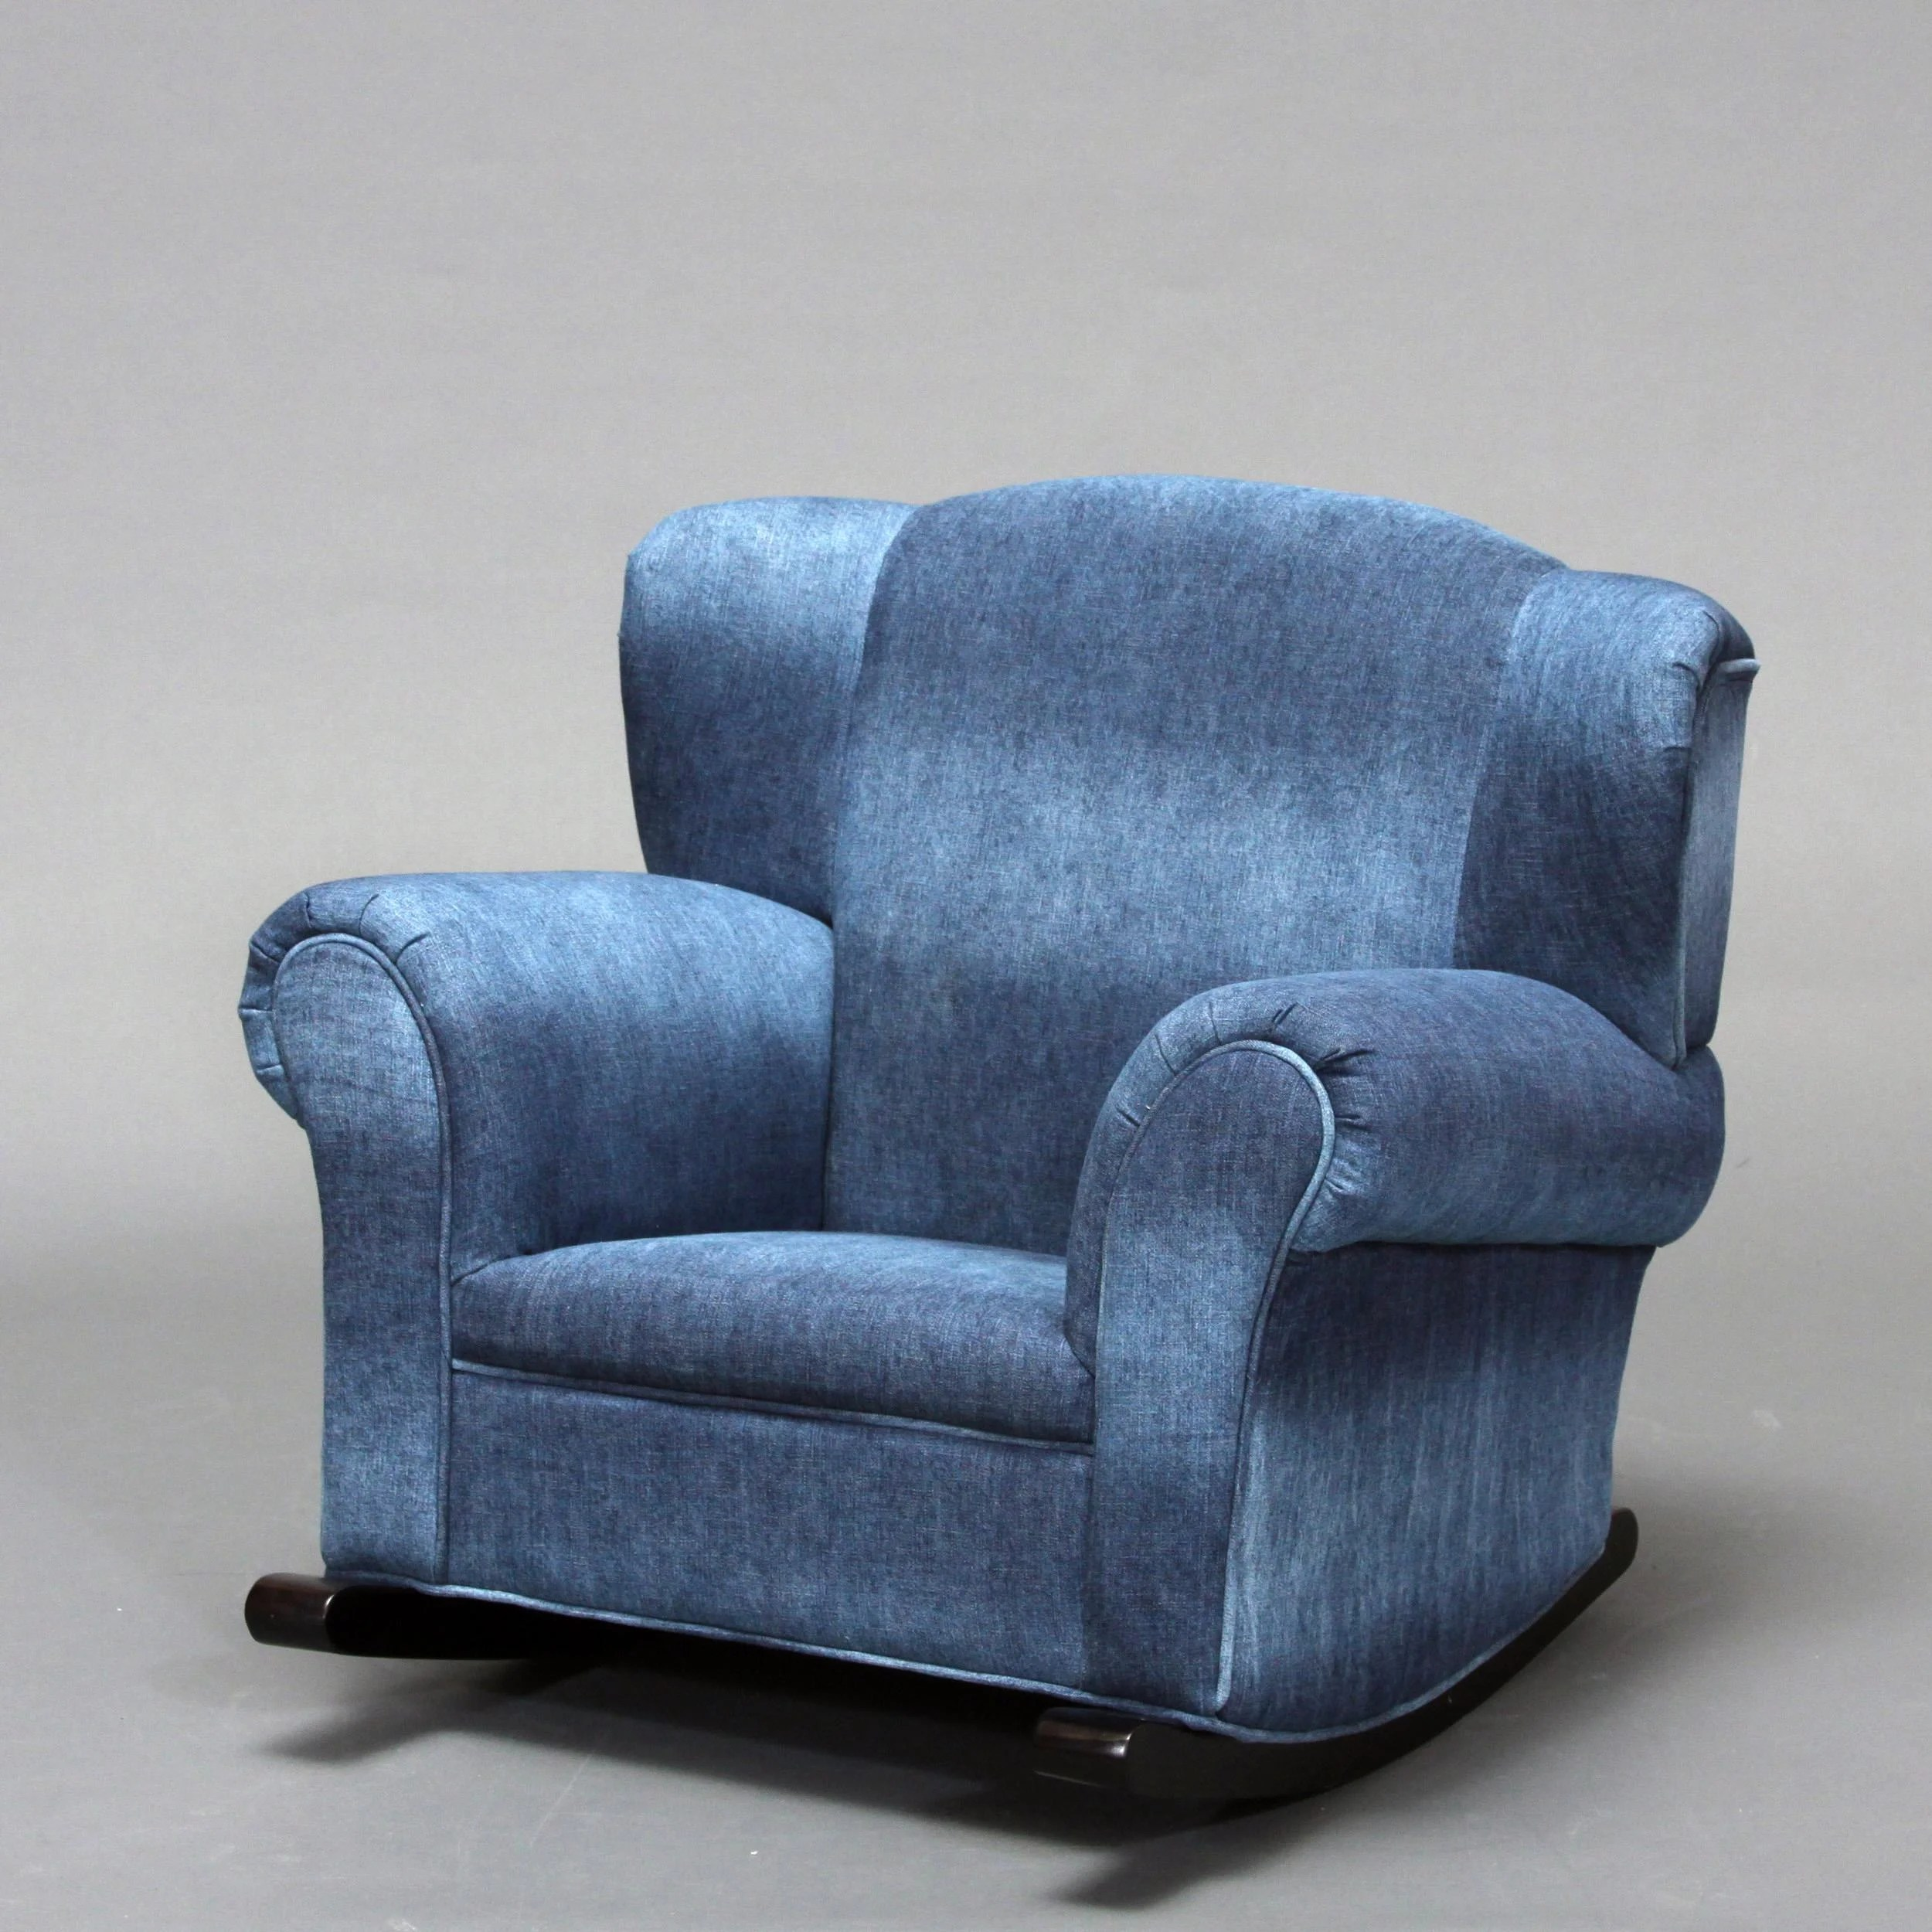 Denim Chairs Child 39s Blue Denim Rocking Chair Free Shipping Today